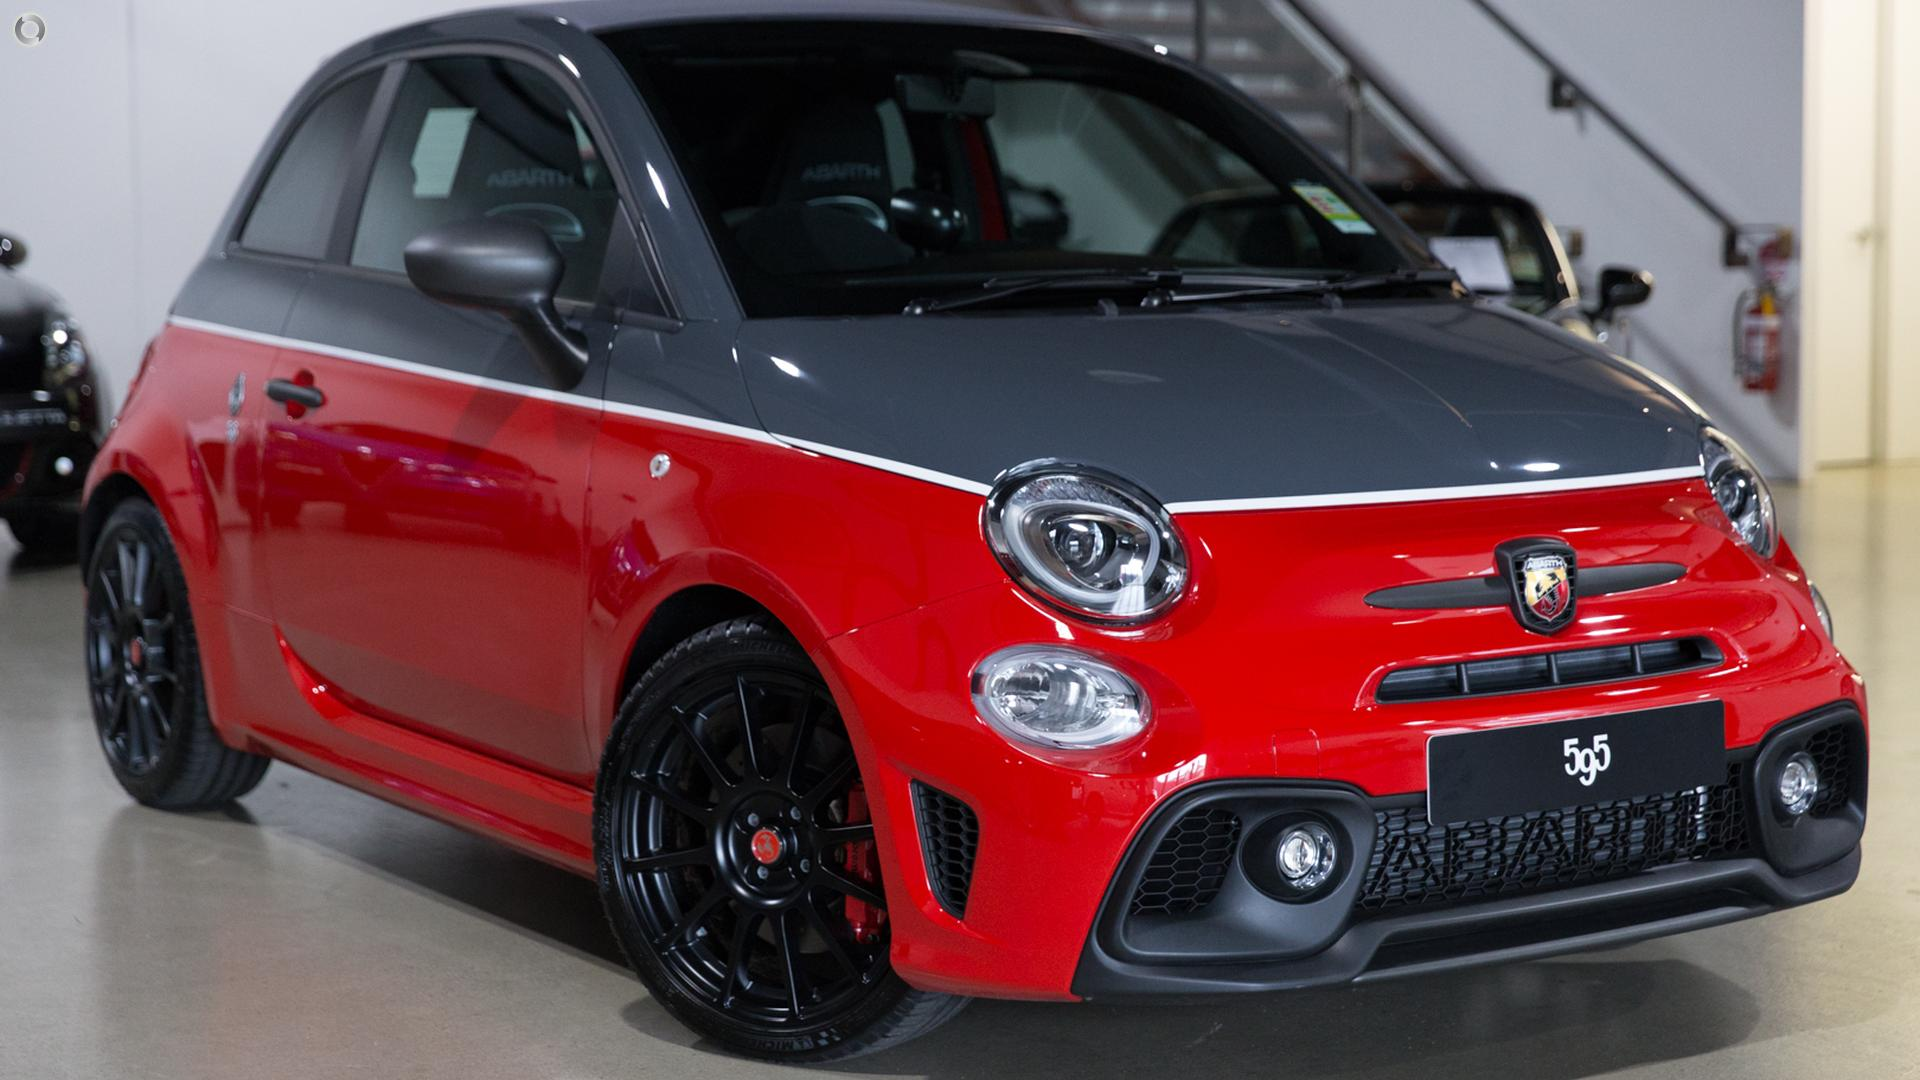 2019 Abarth 595 Series 4